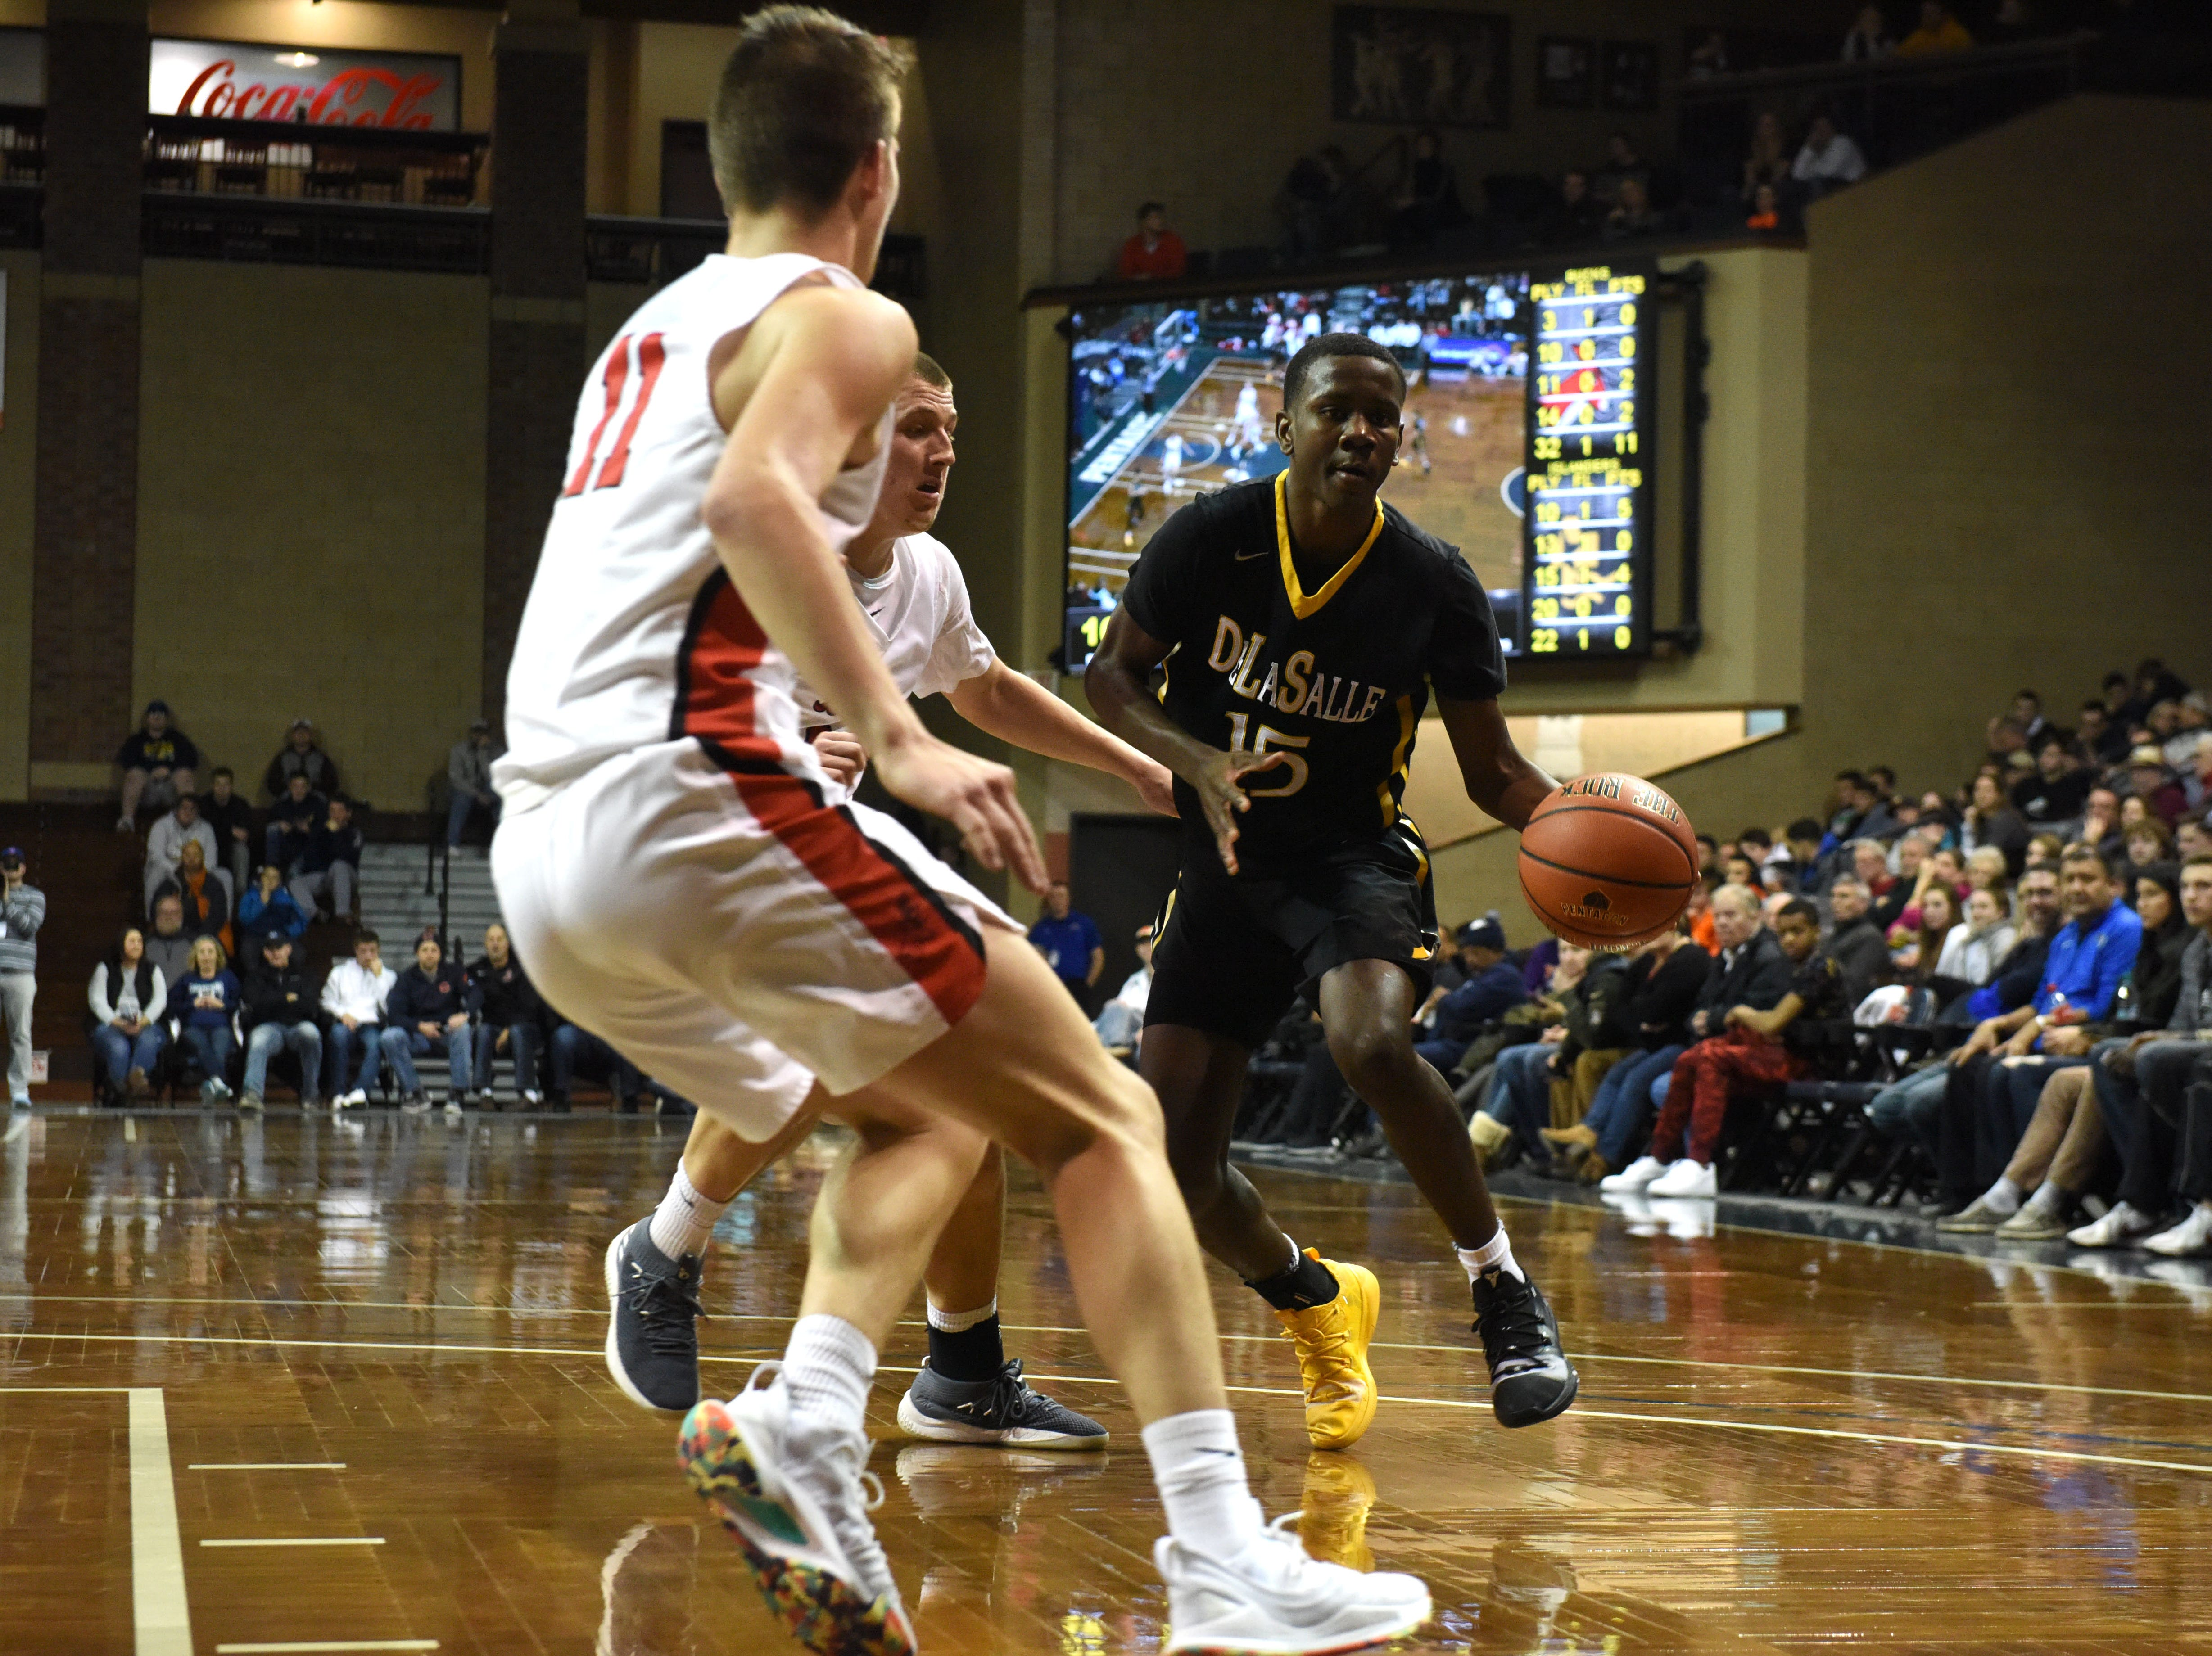 DeLaSalle's Edward Reed (15) dribbles the ball past Yankton players at the Hoop City Classic at the Sanford Pentagon in Sioux Falls, S.D., Saturday, Dec. 29, 2018.